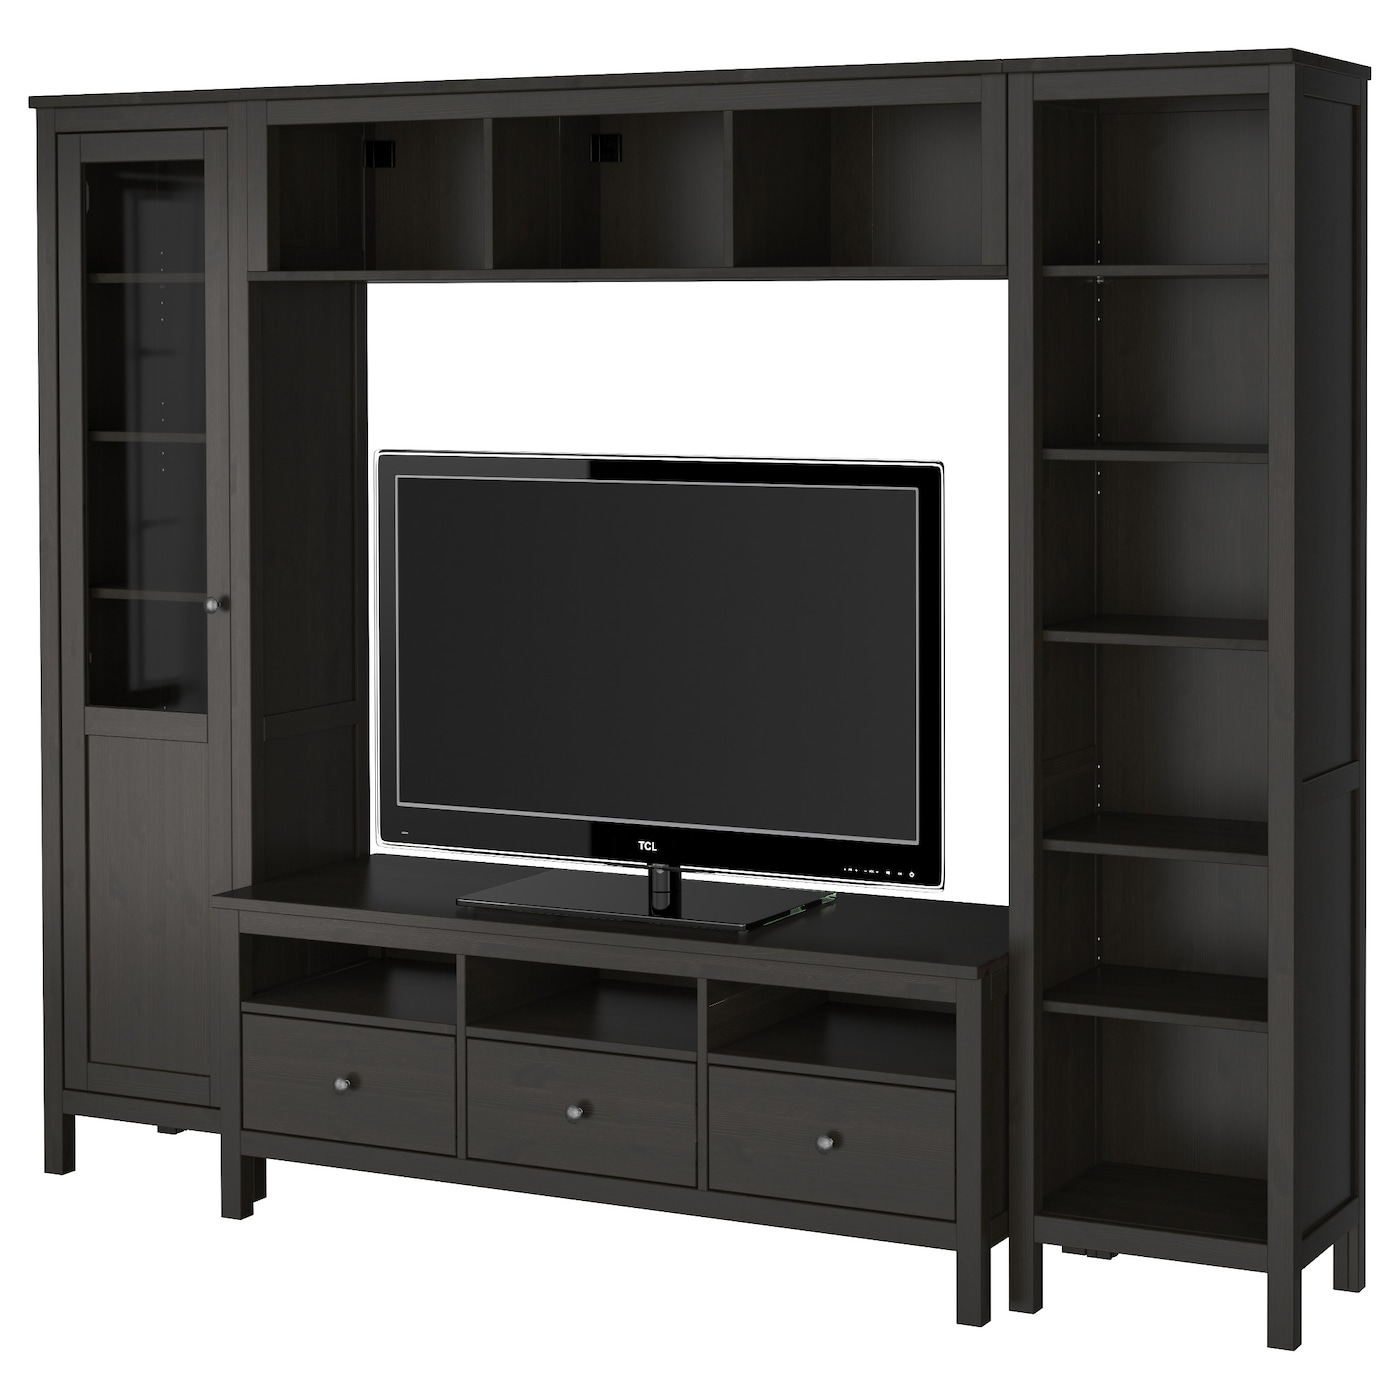 Hemnes tv storage combination black brown 246x197 cm ikea for Meuble cd dvd ikea